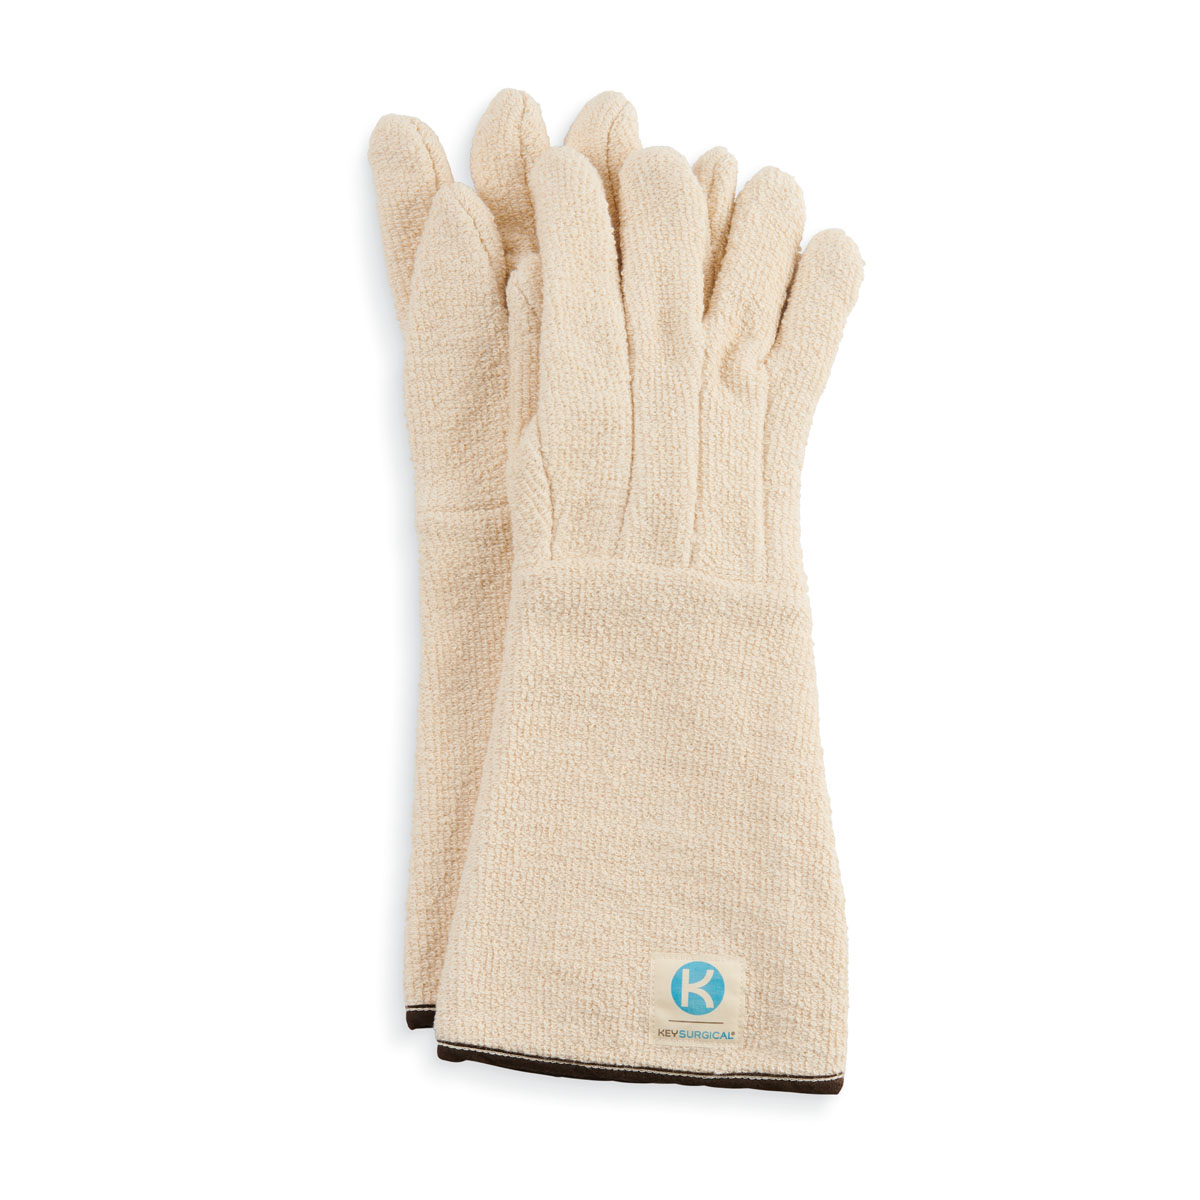 Steriliser Mitts and Gloves Image